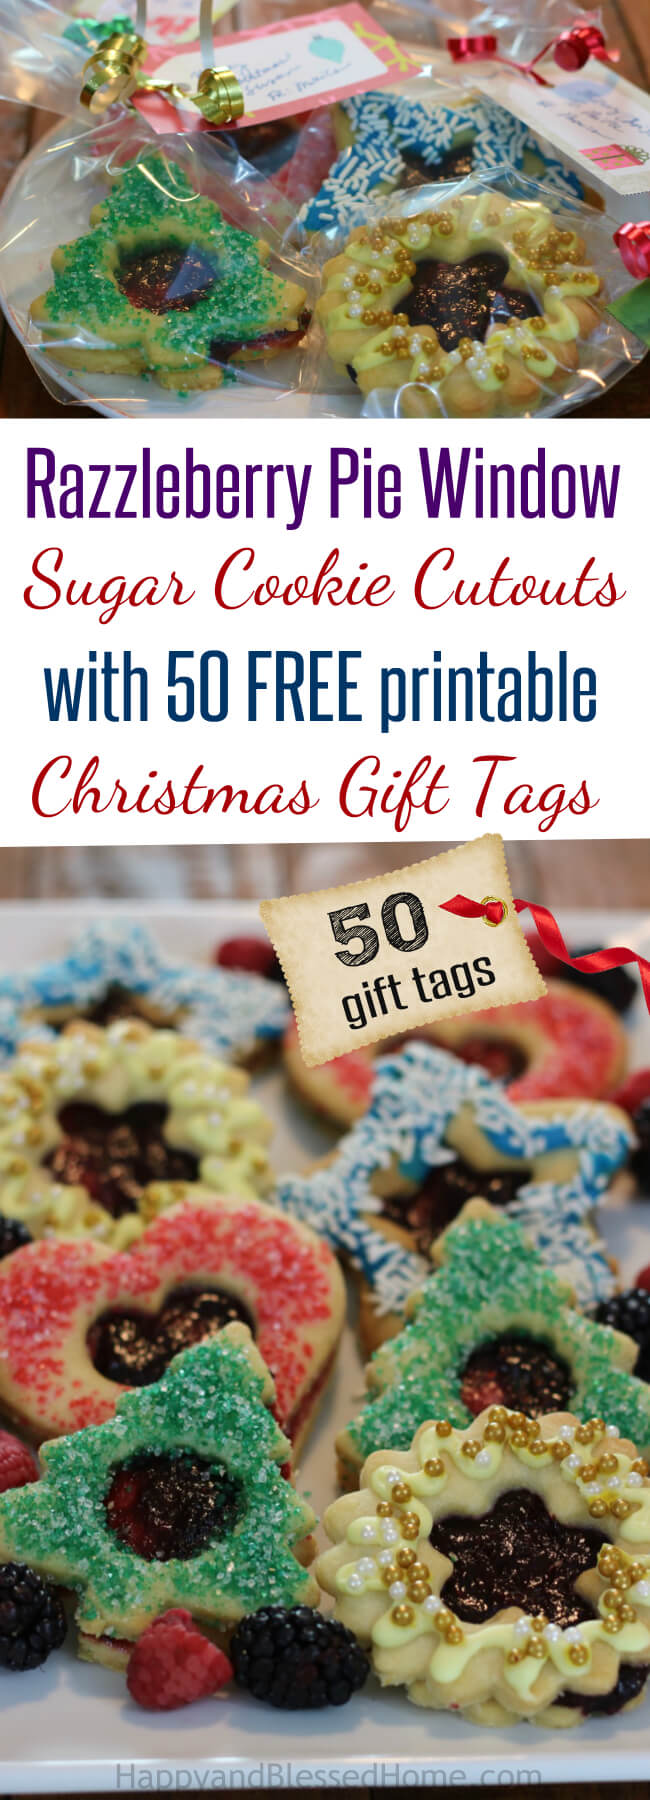 50 FREE CHristmas Gift Tags AND a Razzleberry Pie Window Sugar Cookie Cutout Recipe